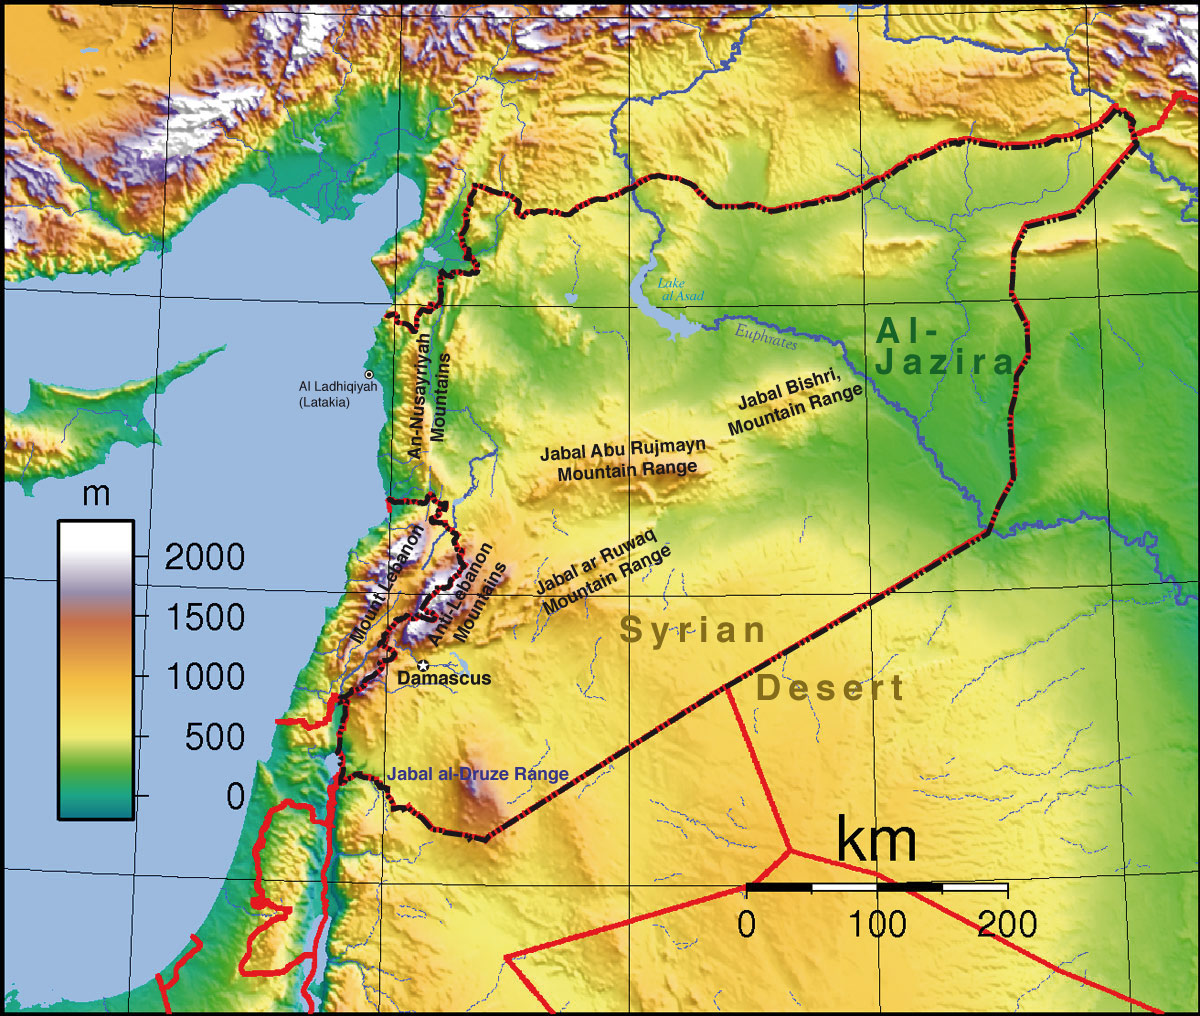 Syria topographic map eurasian geopolitics syria topographic map gumiabroncs Choice Image